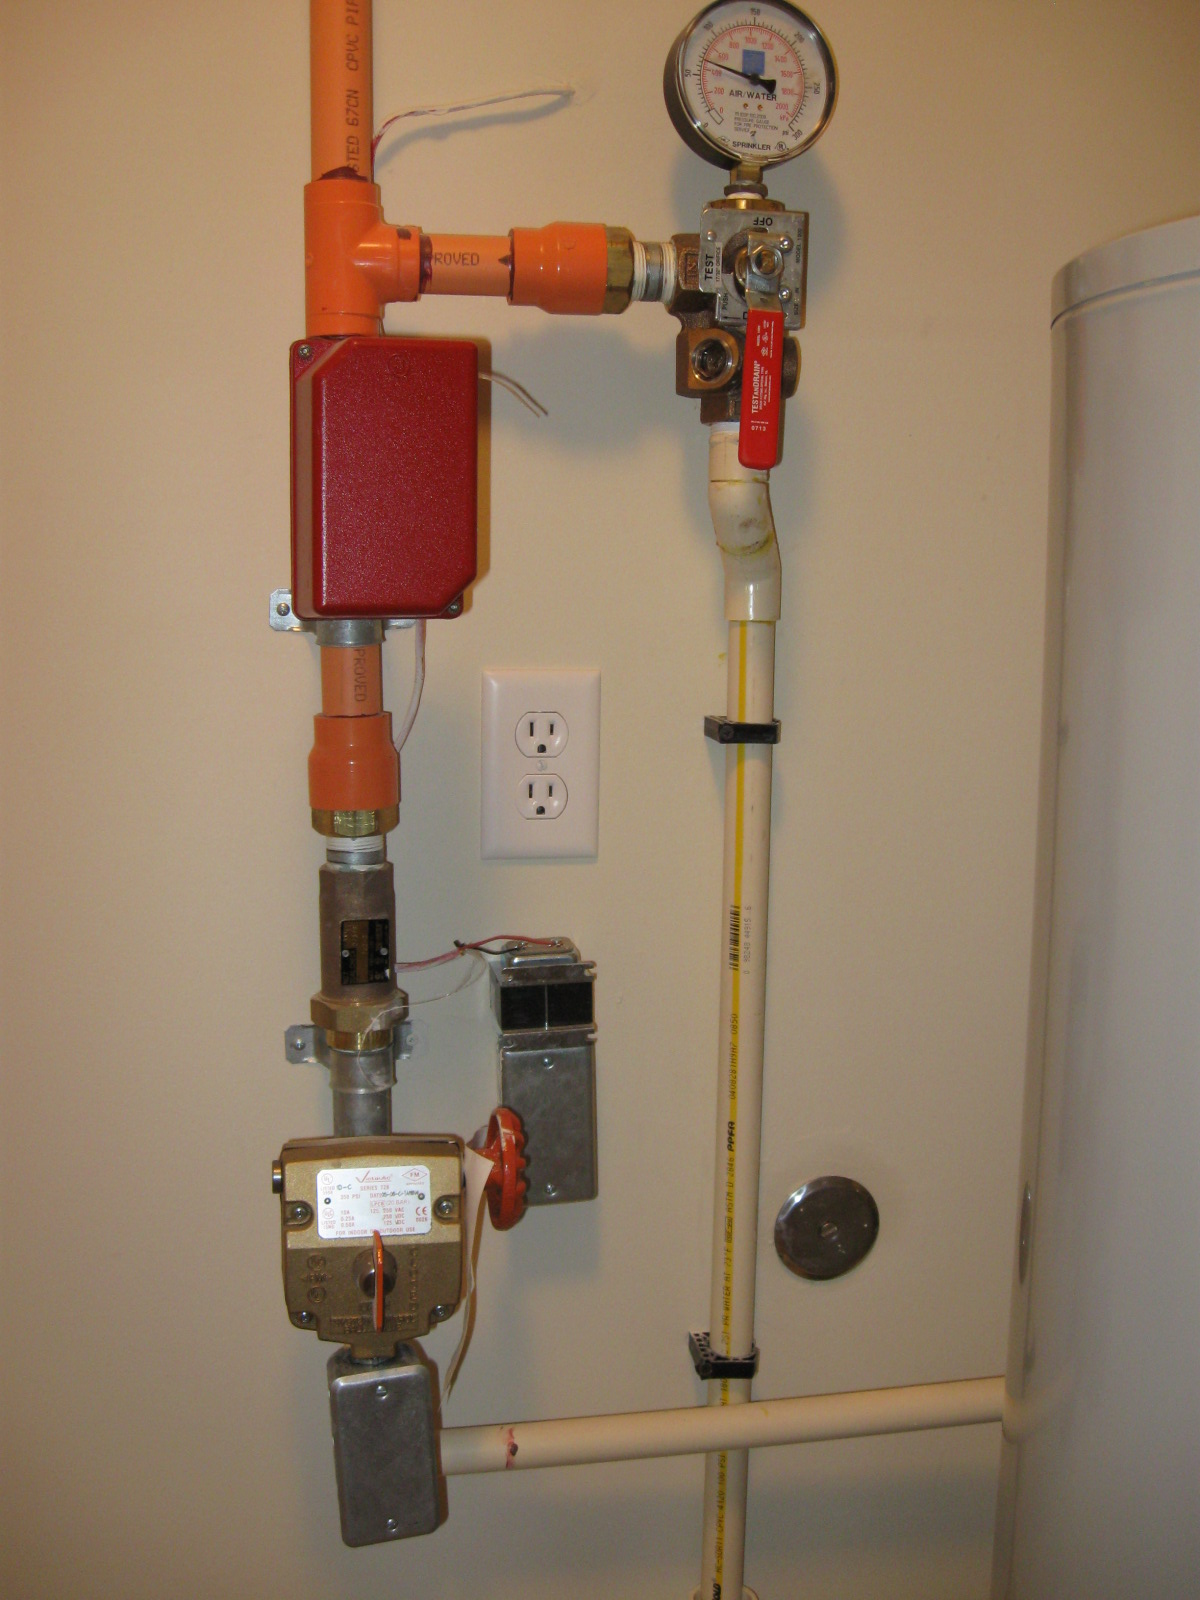 Delightful Home Fire Sprinkler System Photo